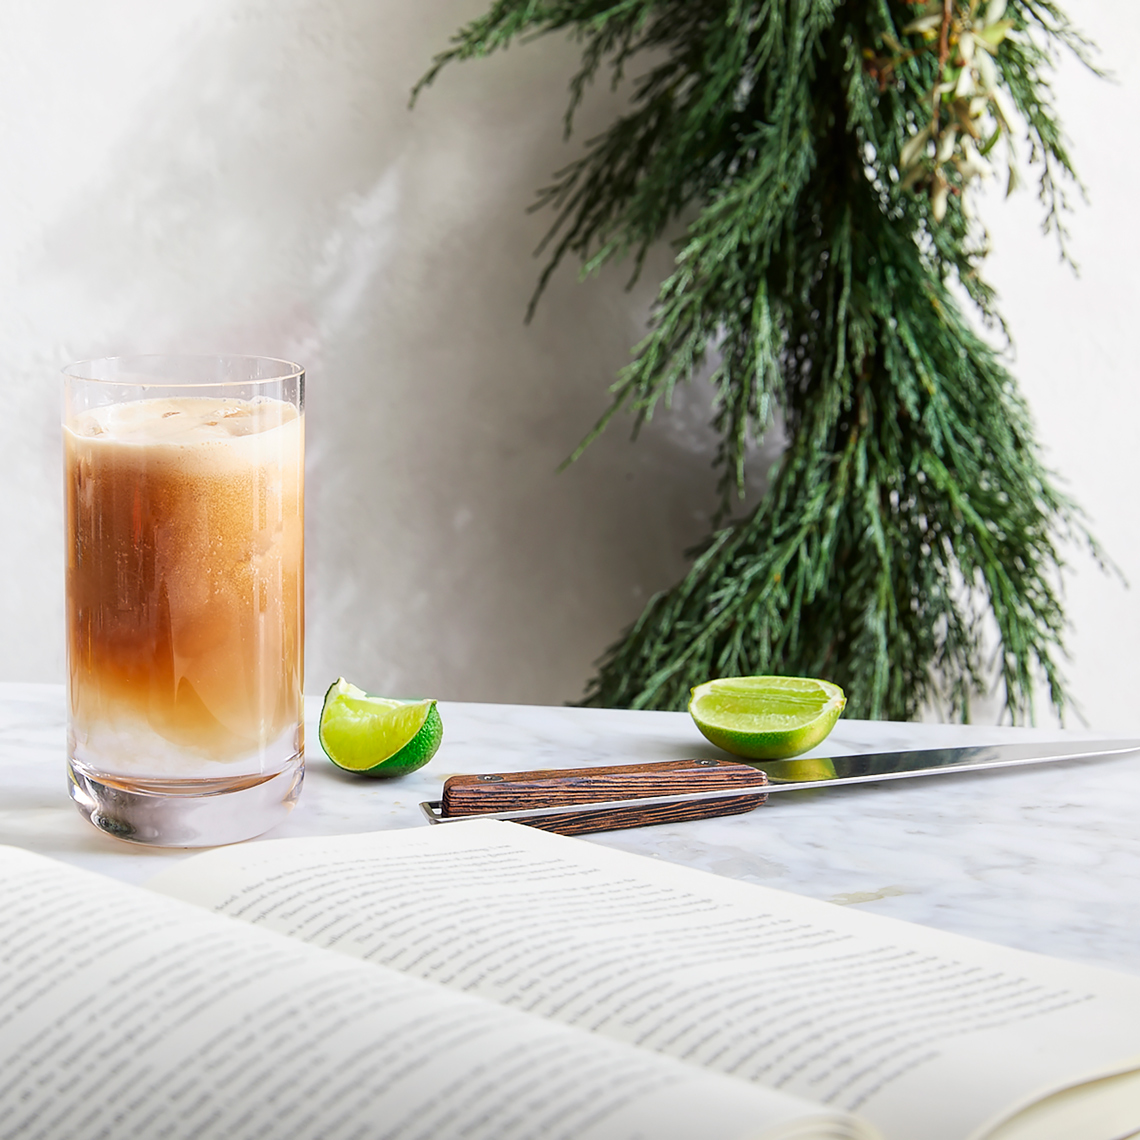 Marx_Food_Photography_Coffee_Tonic_Drink